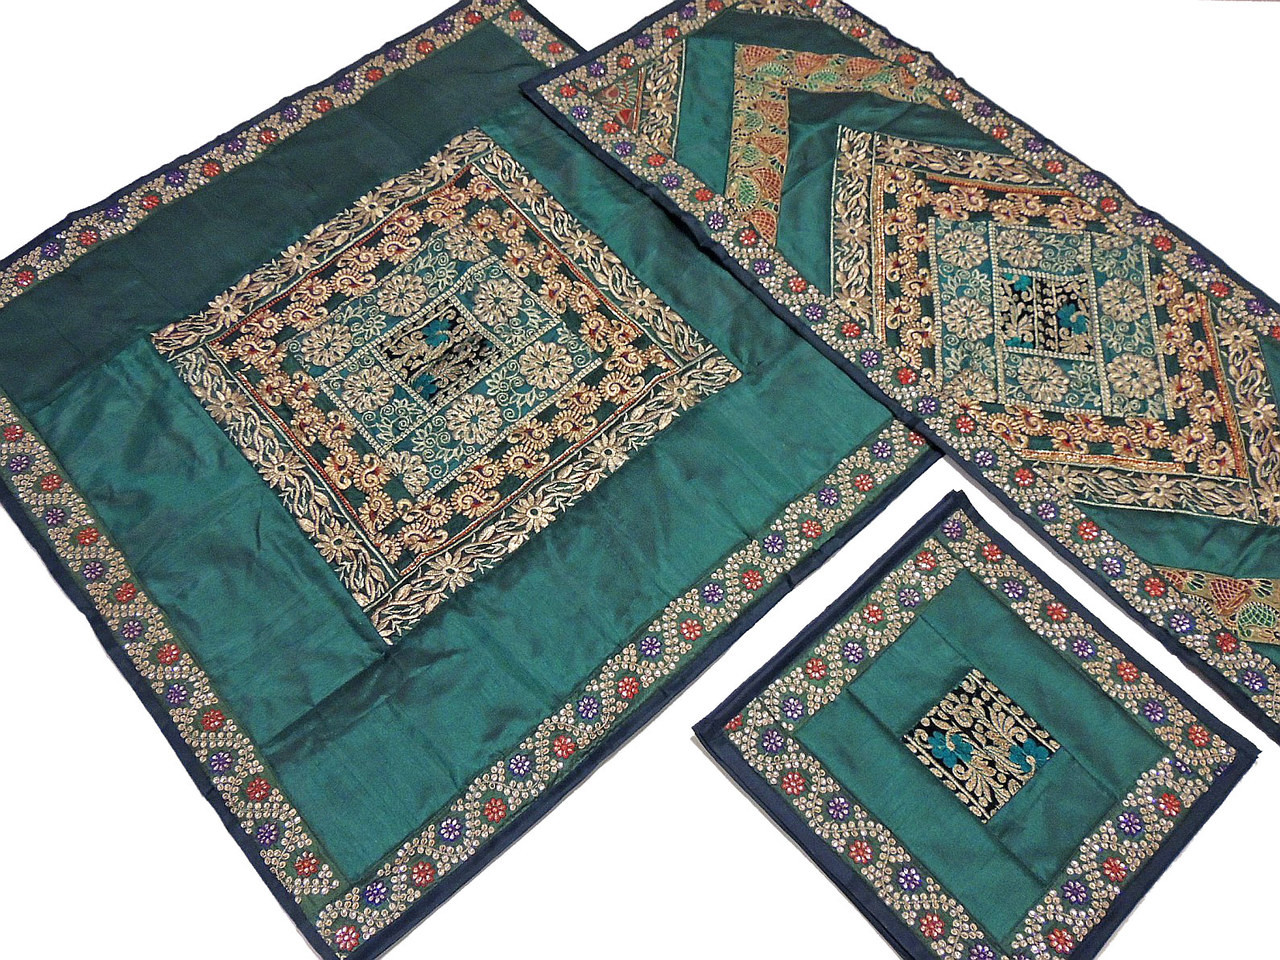 Decorative Table Linens Set   Green Fine Embroidery Designer Overlay Runner  Placemats.